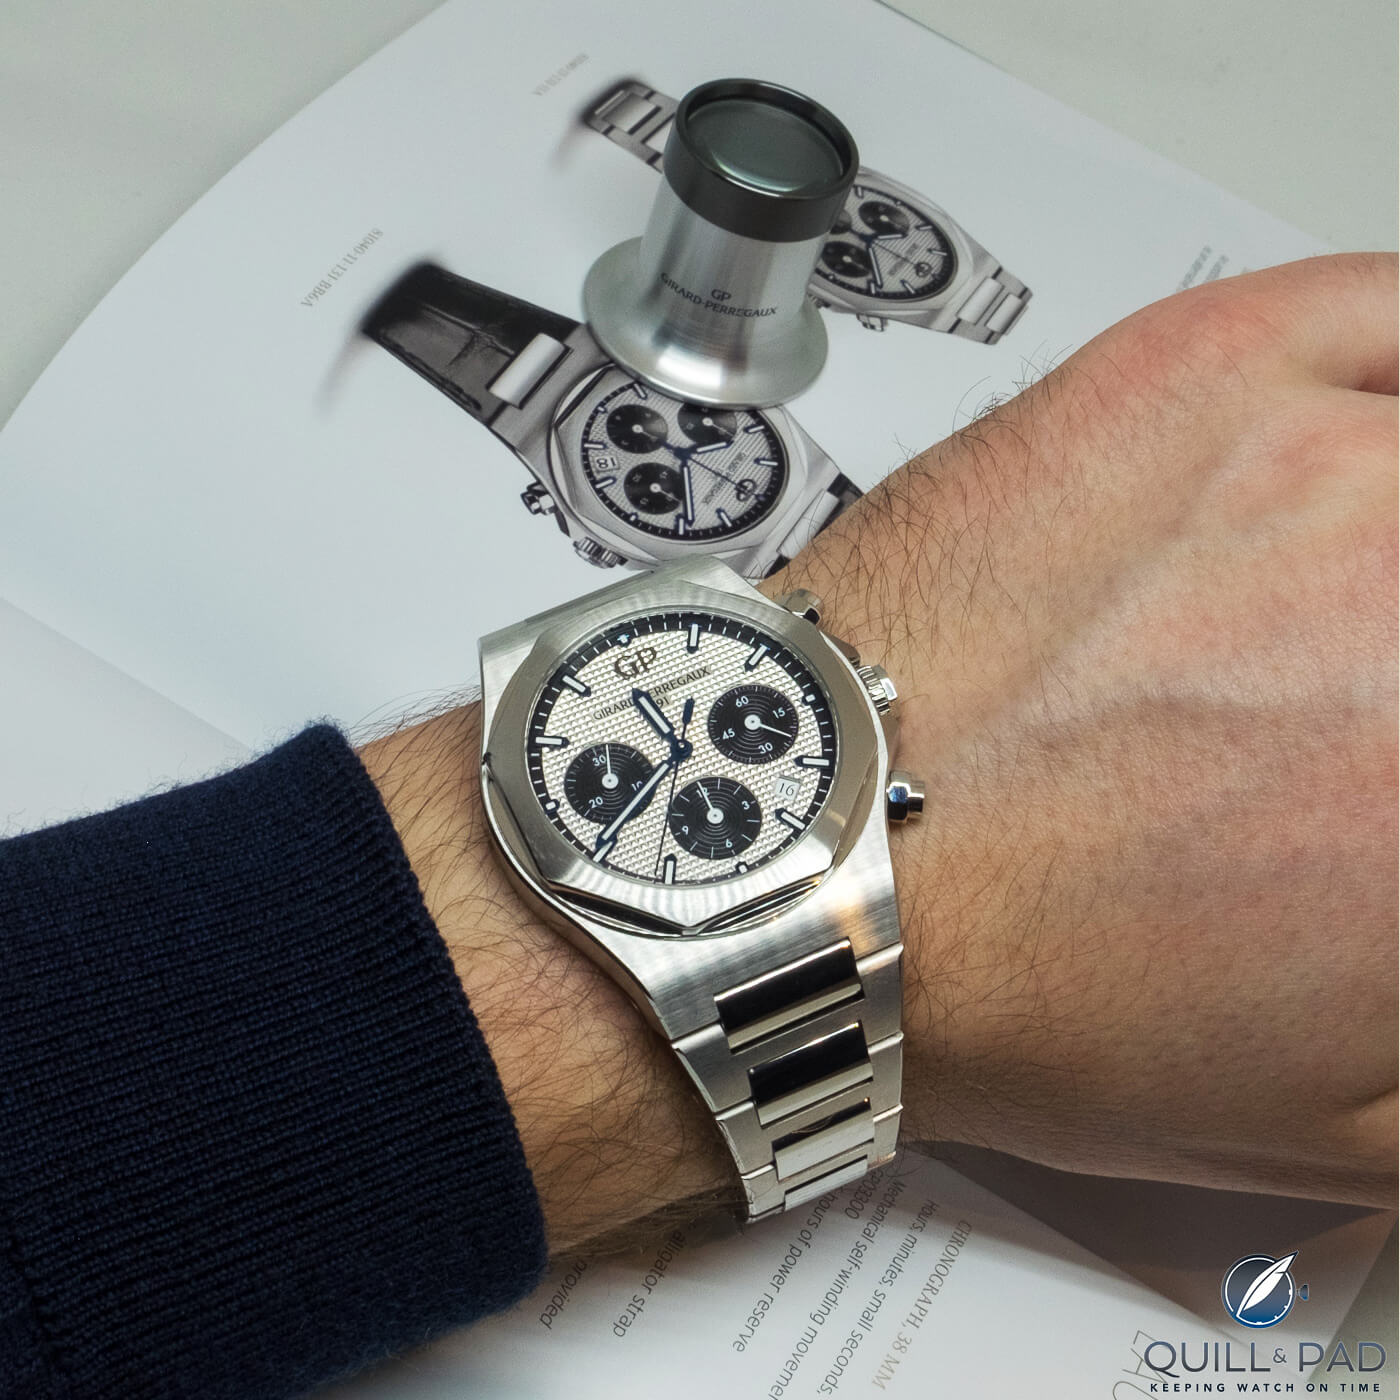 Girard-Perregaux Laureato Chronograph 38 mm on the wrist (photo courtesy ch24.pl)